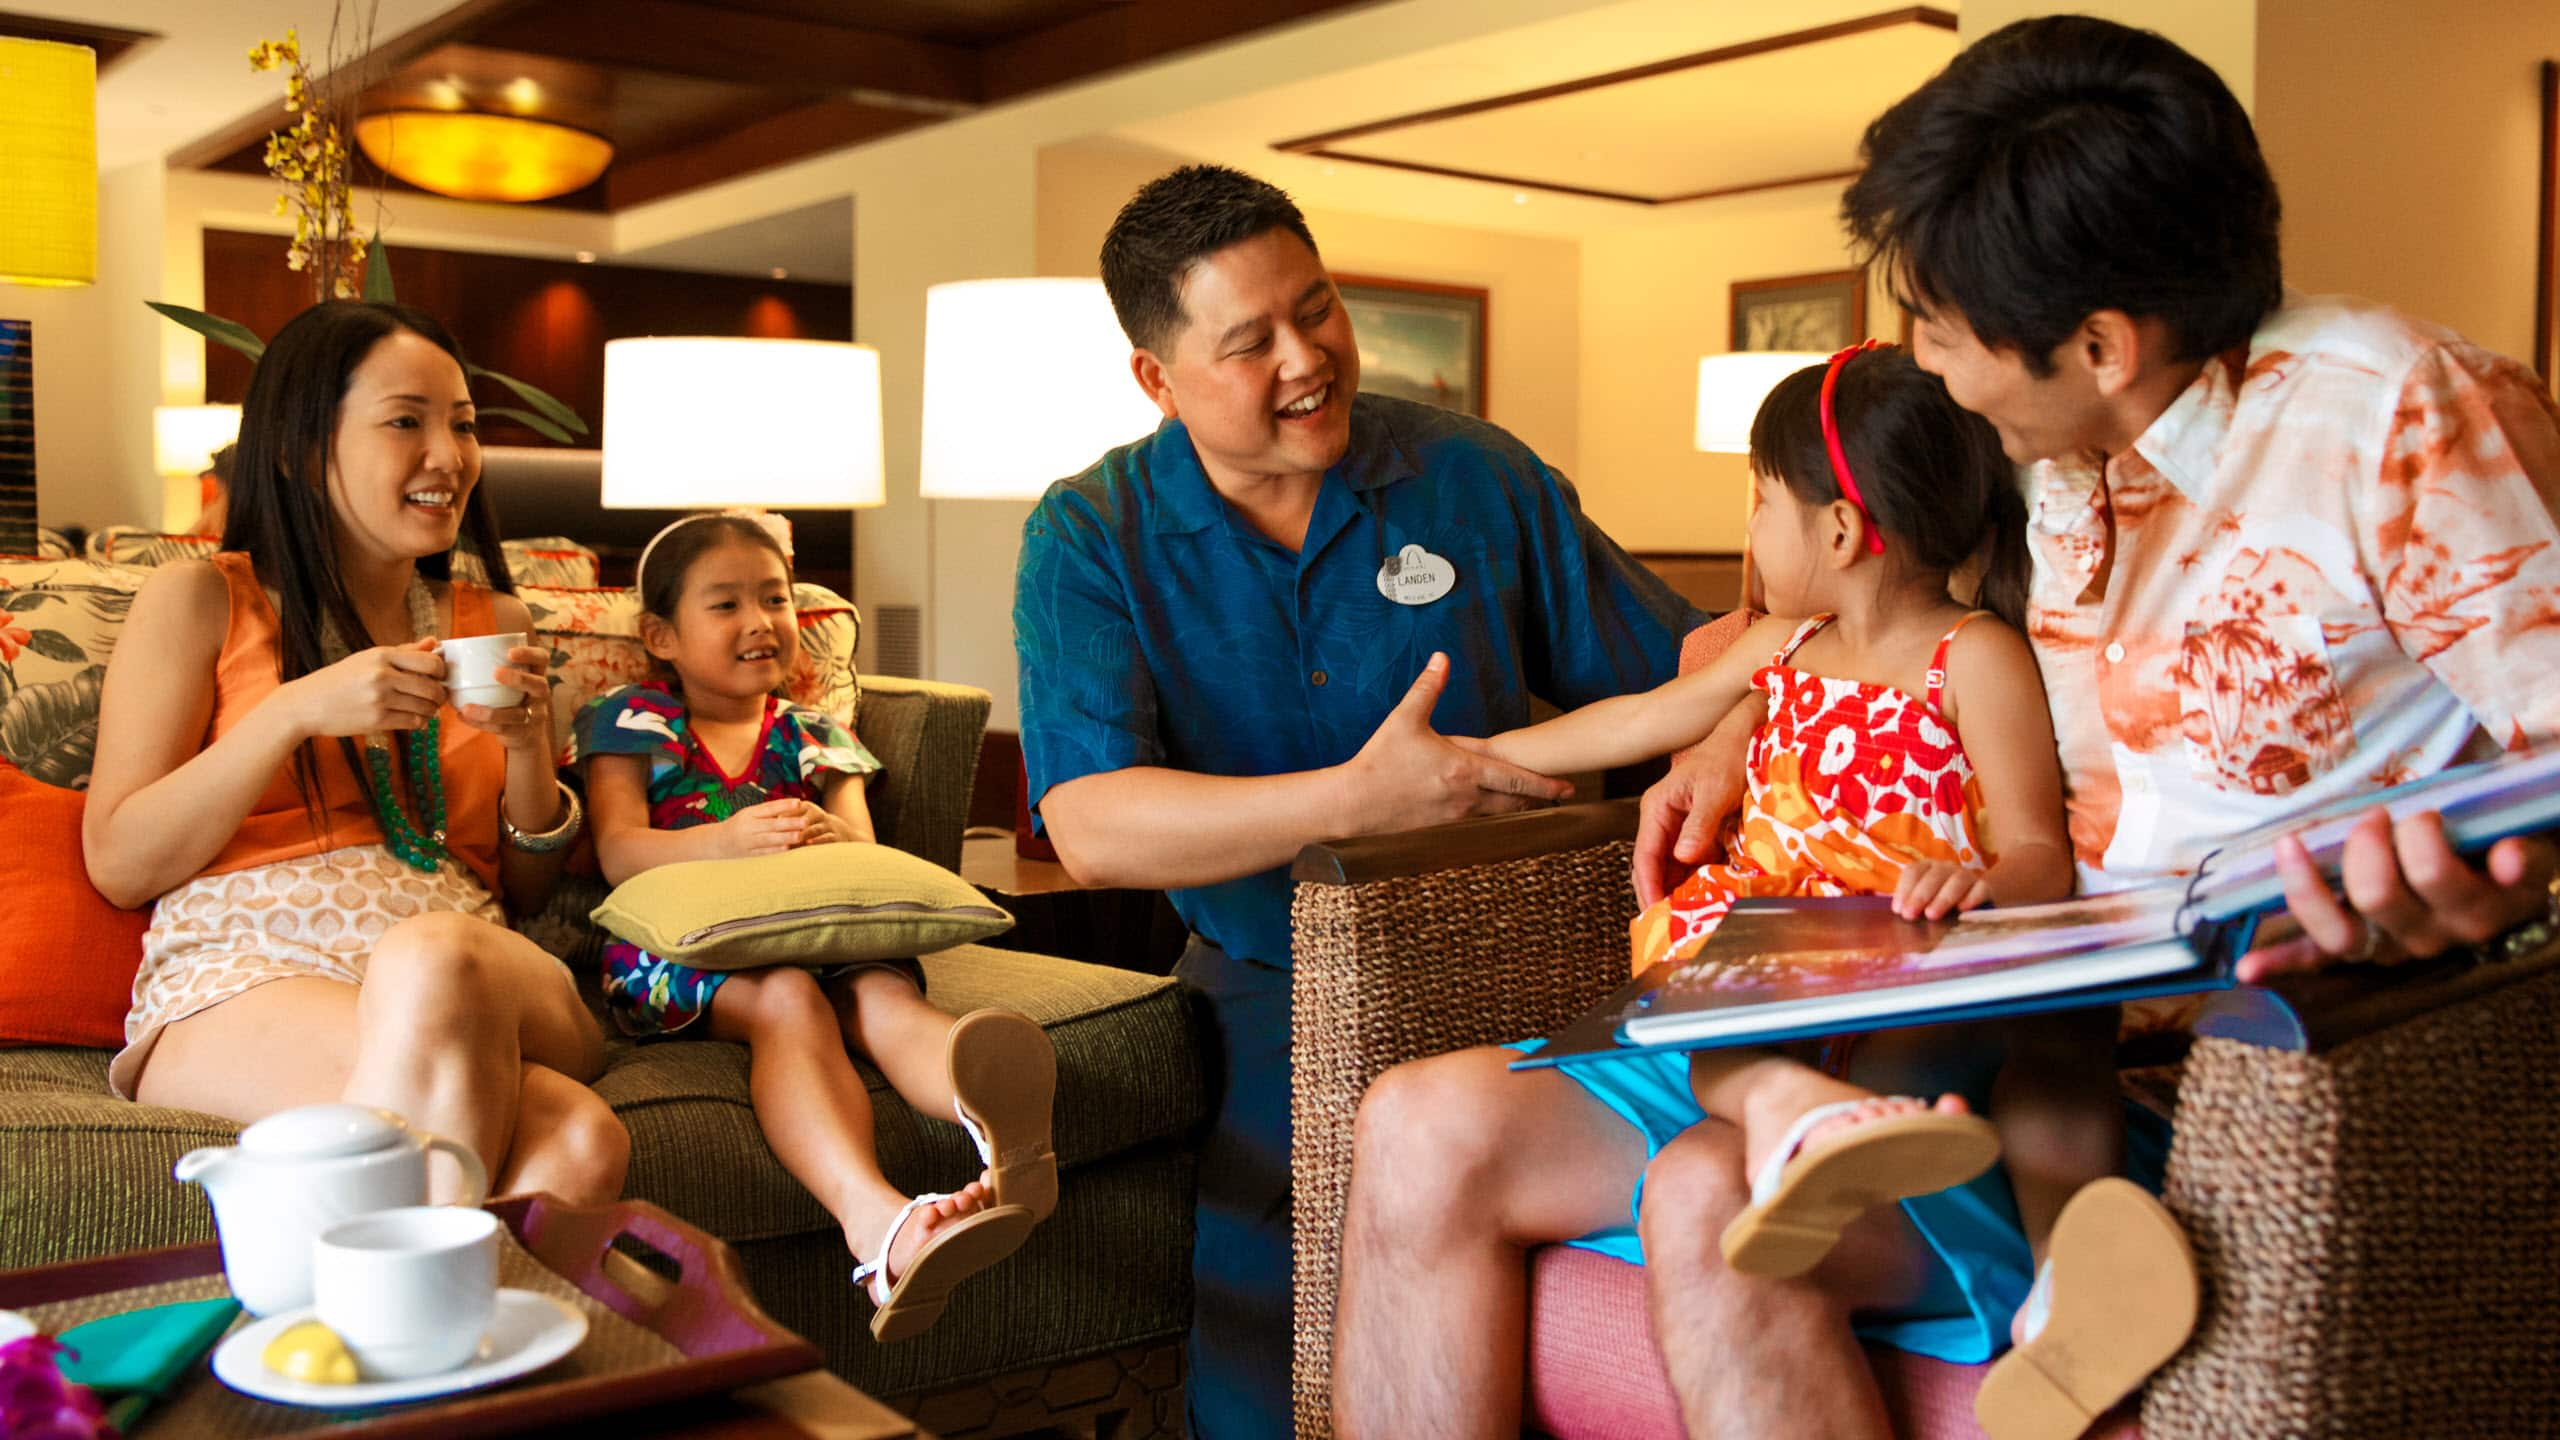 A Disney Cast Member greets a family of 4 in a lounge area